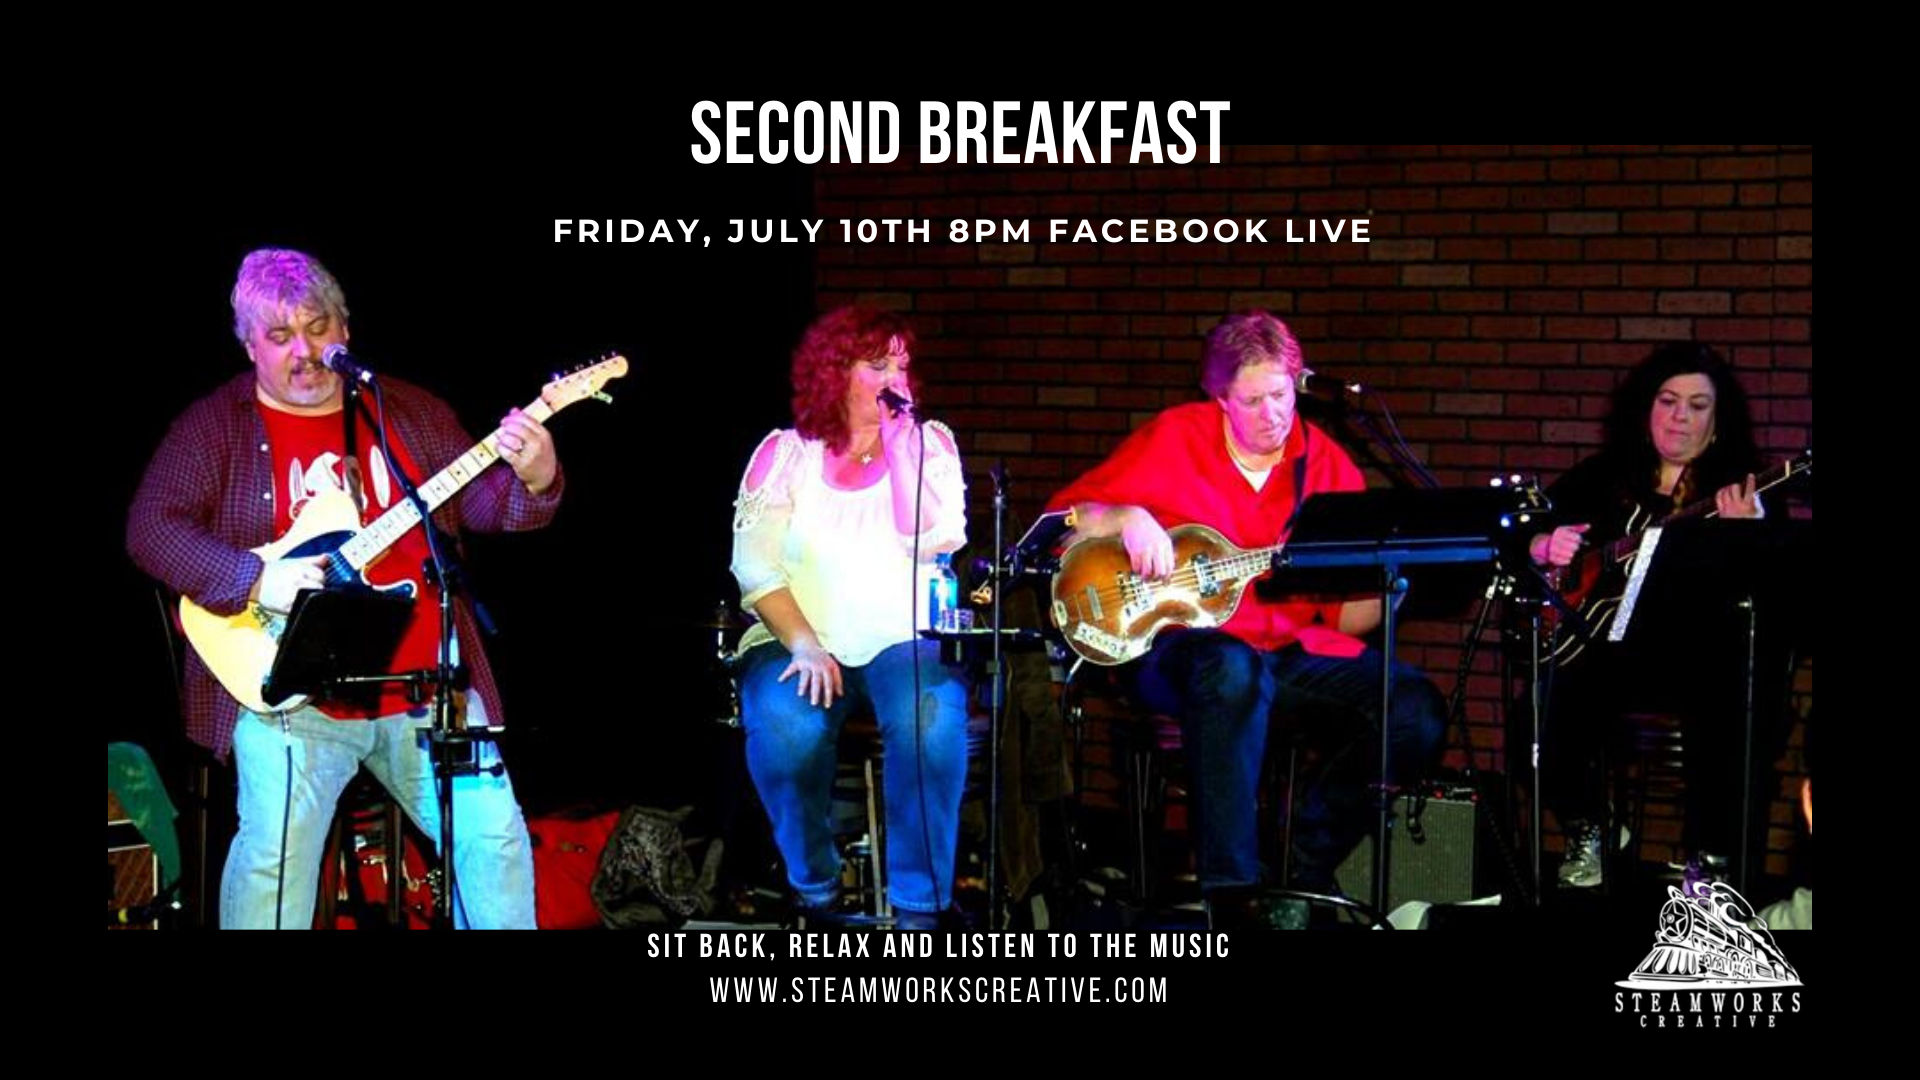 Second Breakfast | Facebook Live 8 PM